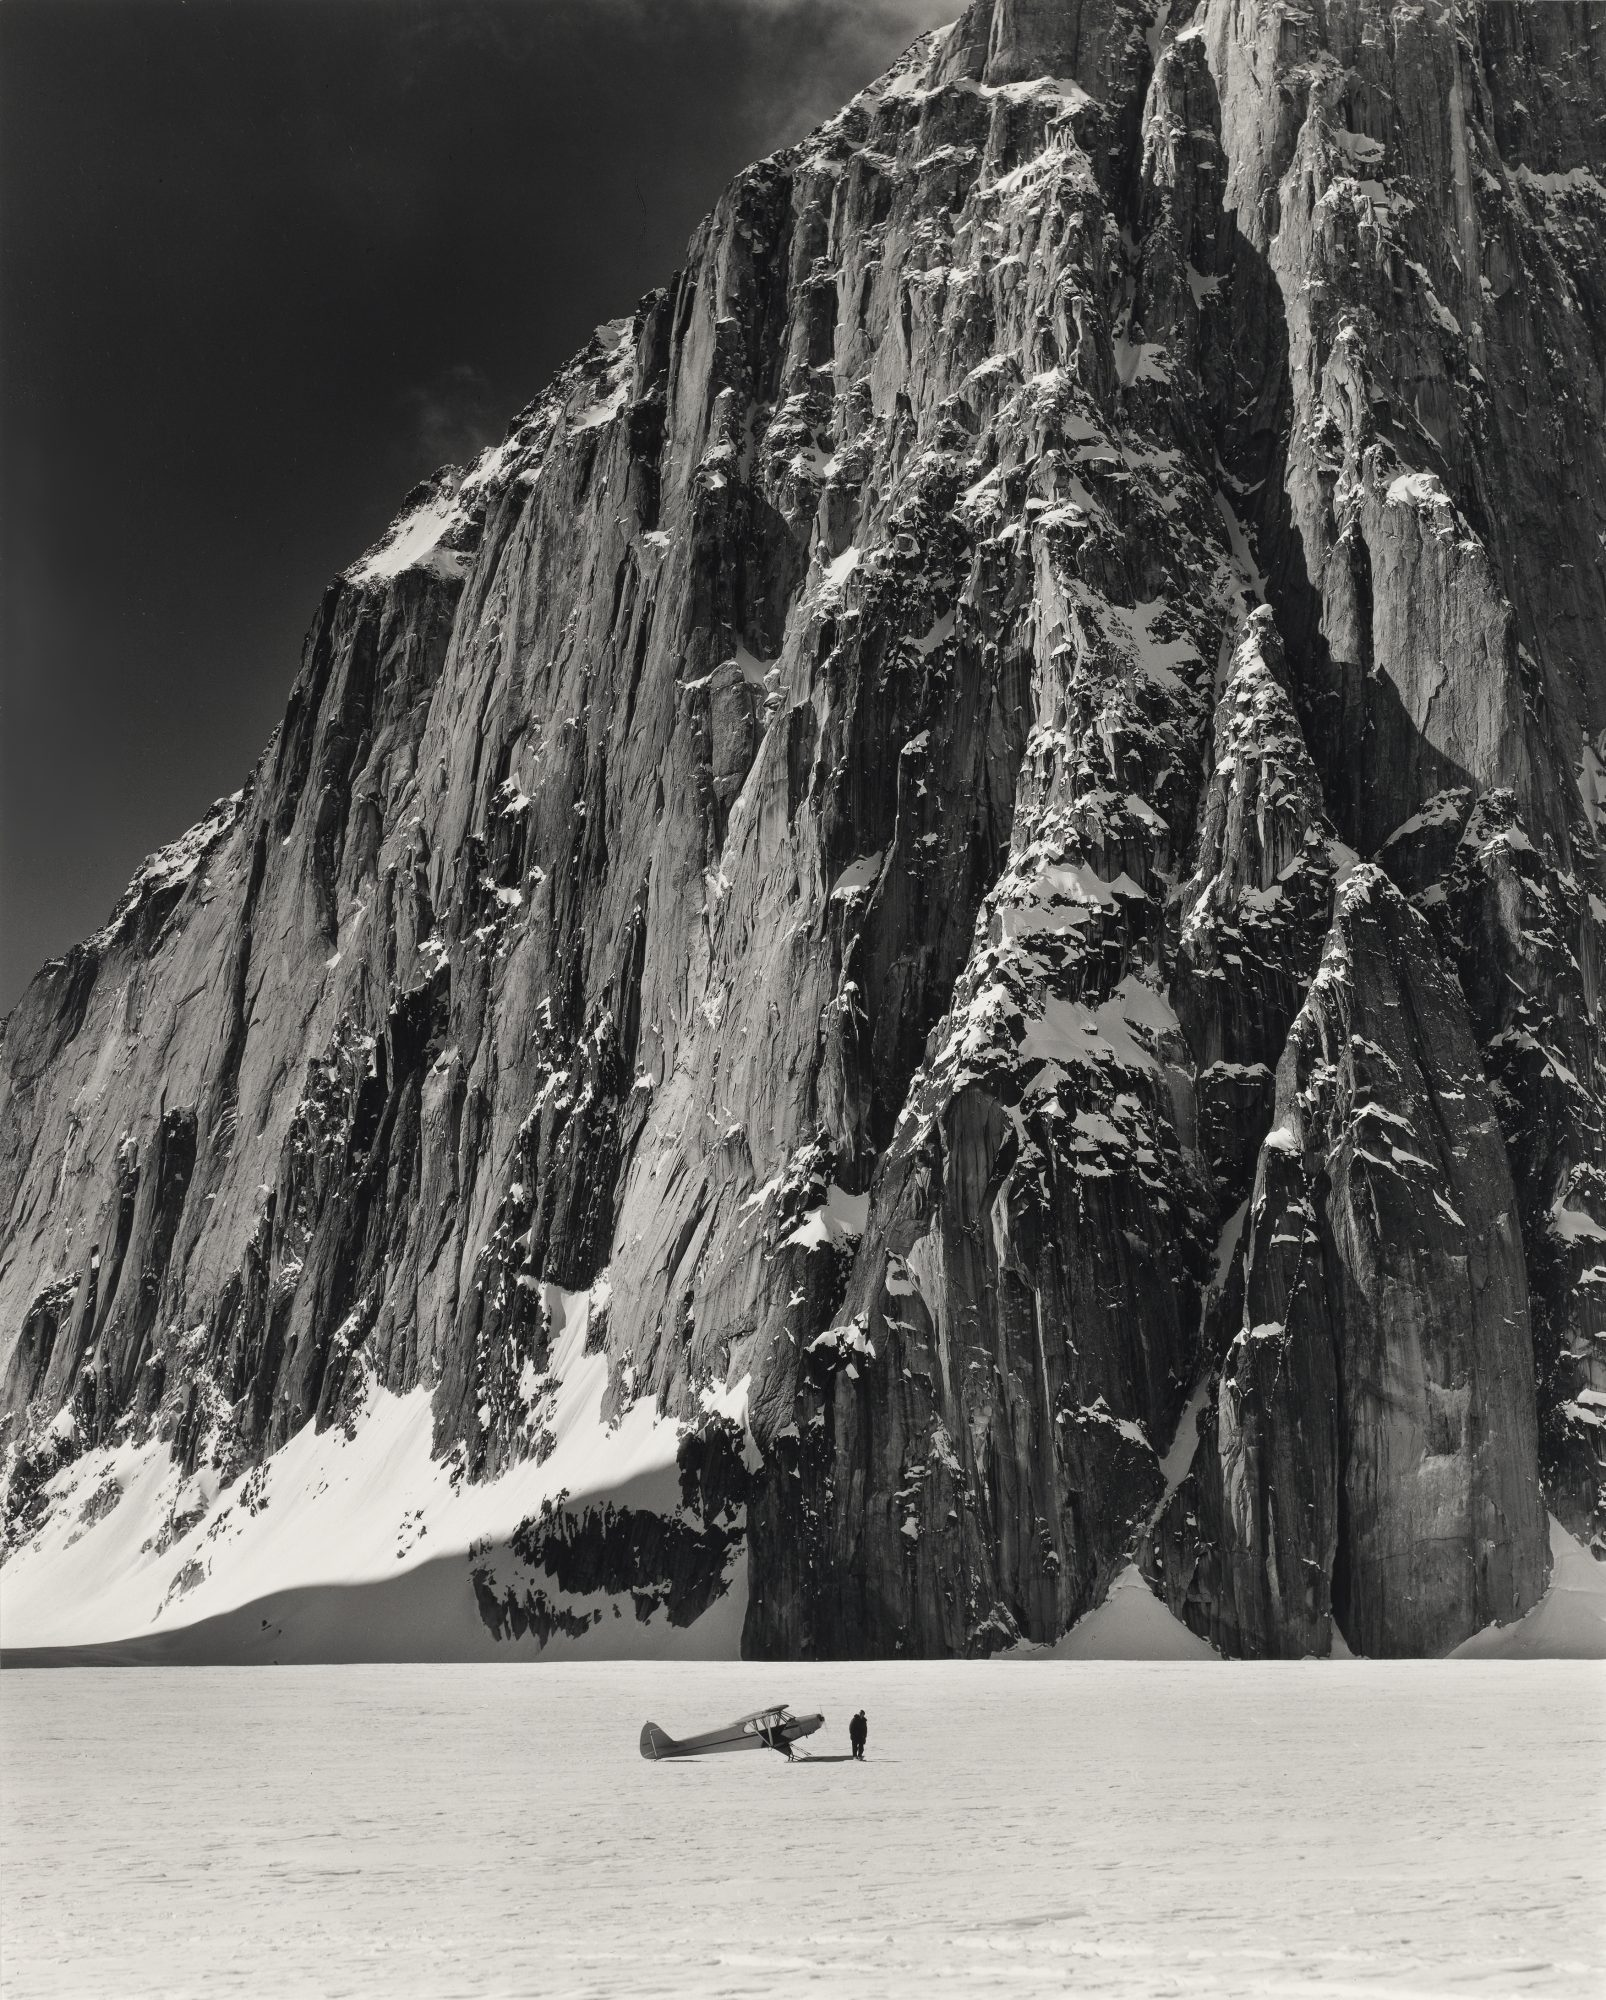 Bradford Washburn (American, 1910-2007) Don Sheldon with his Super Lab Plane in the Great Gorge of the Ruth Glacier at the foot of Mt. Dickey, Alaska